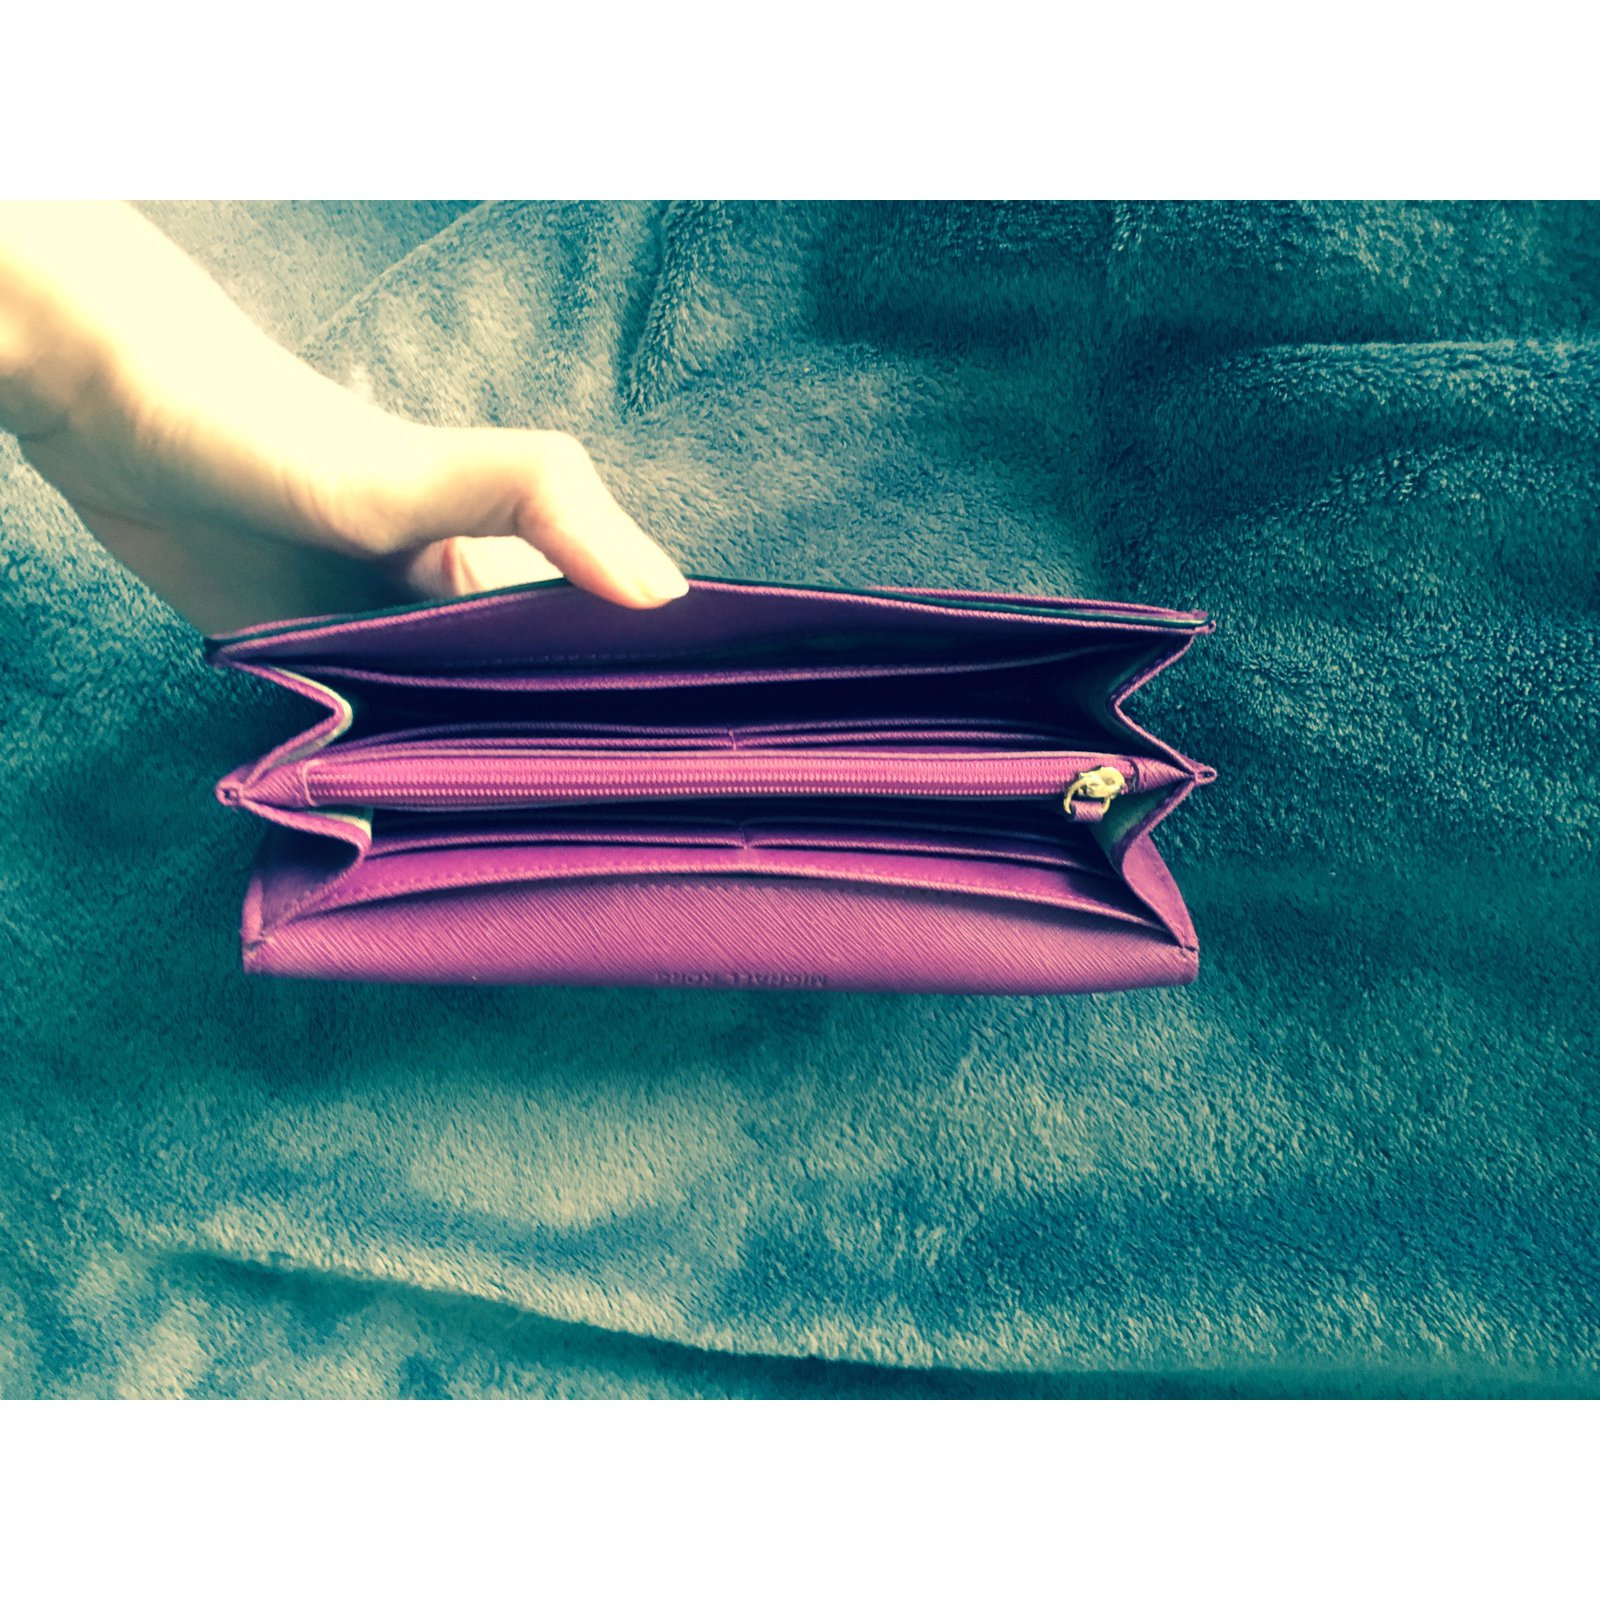 cc022efcdb54 Facebook · Pin This. Michael Kors Wallets Wallets Leather Purple ...